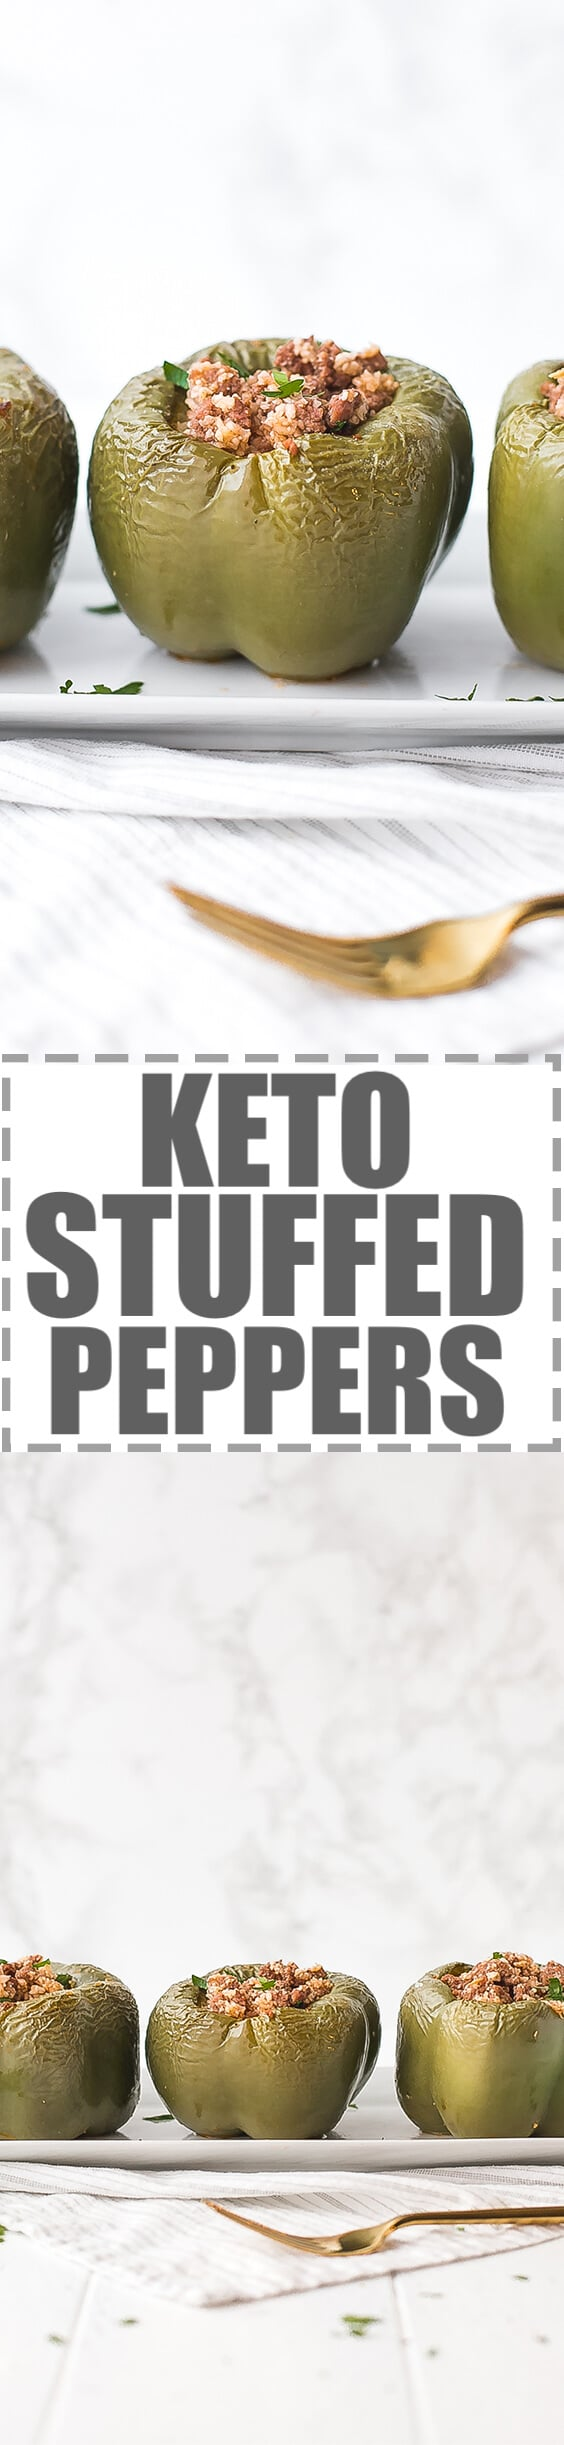 Keto Stuffed Peppers With Cauliflower Rice Recipe - simple, low-carb meal, made with bell peppers, ground beef and cauliflower rice. Quick and easy to make, nutritious and delicious! #ketorecipes #lowcarbrecipes #ketodiet #stuffedpeppers